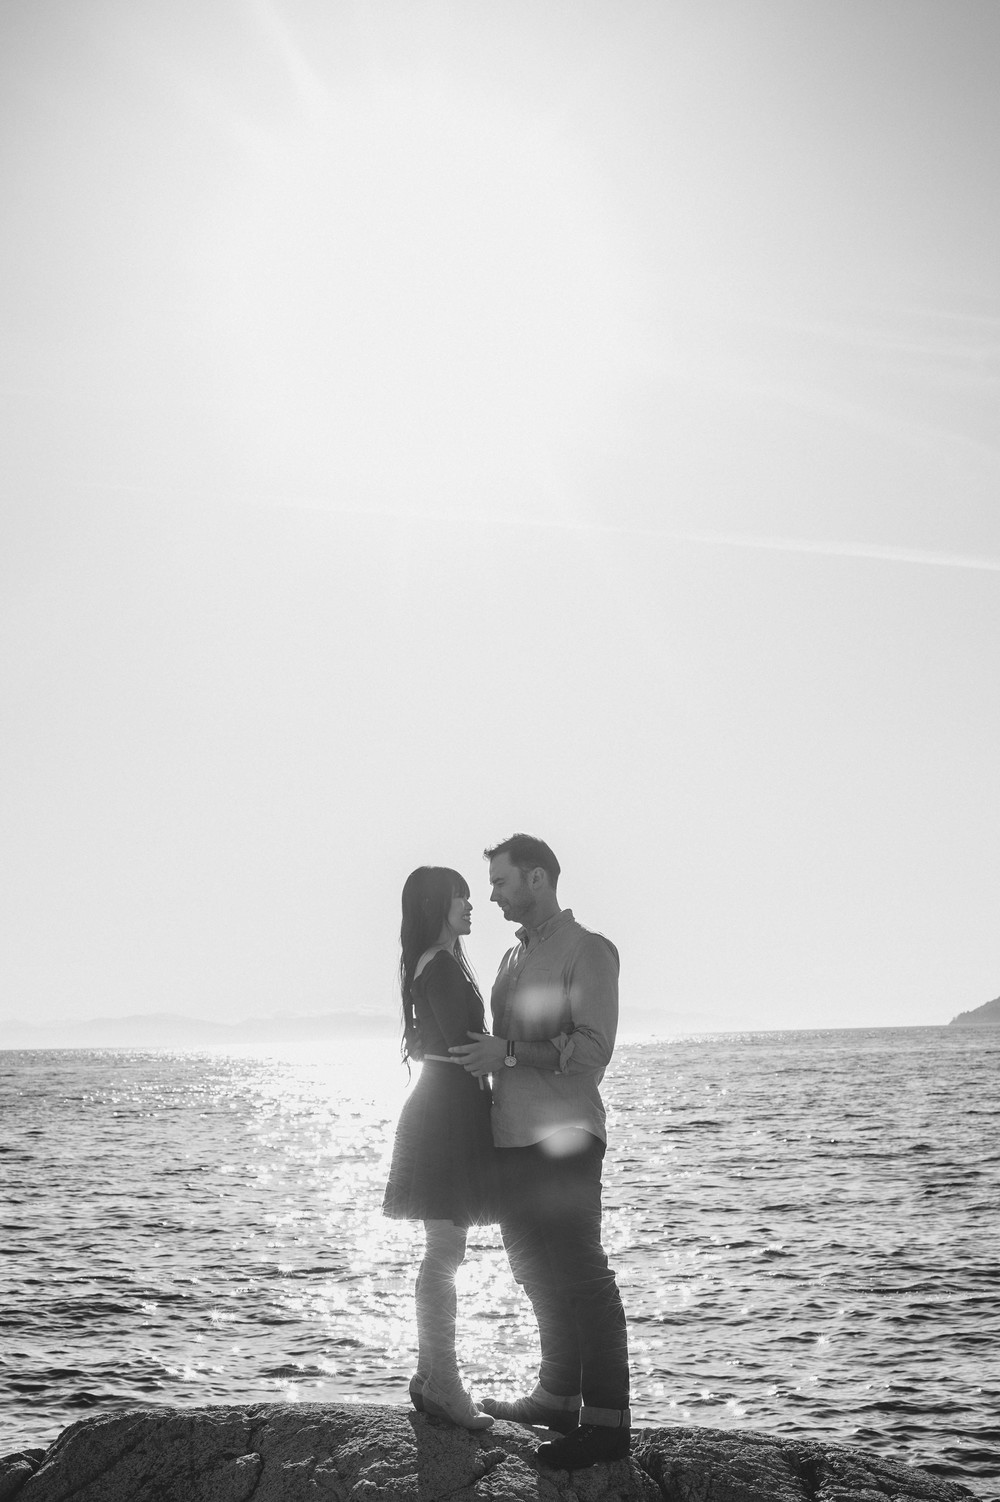 Vaccouver Lighthouse park engagement photography Edward Lai Photography-10.jpg